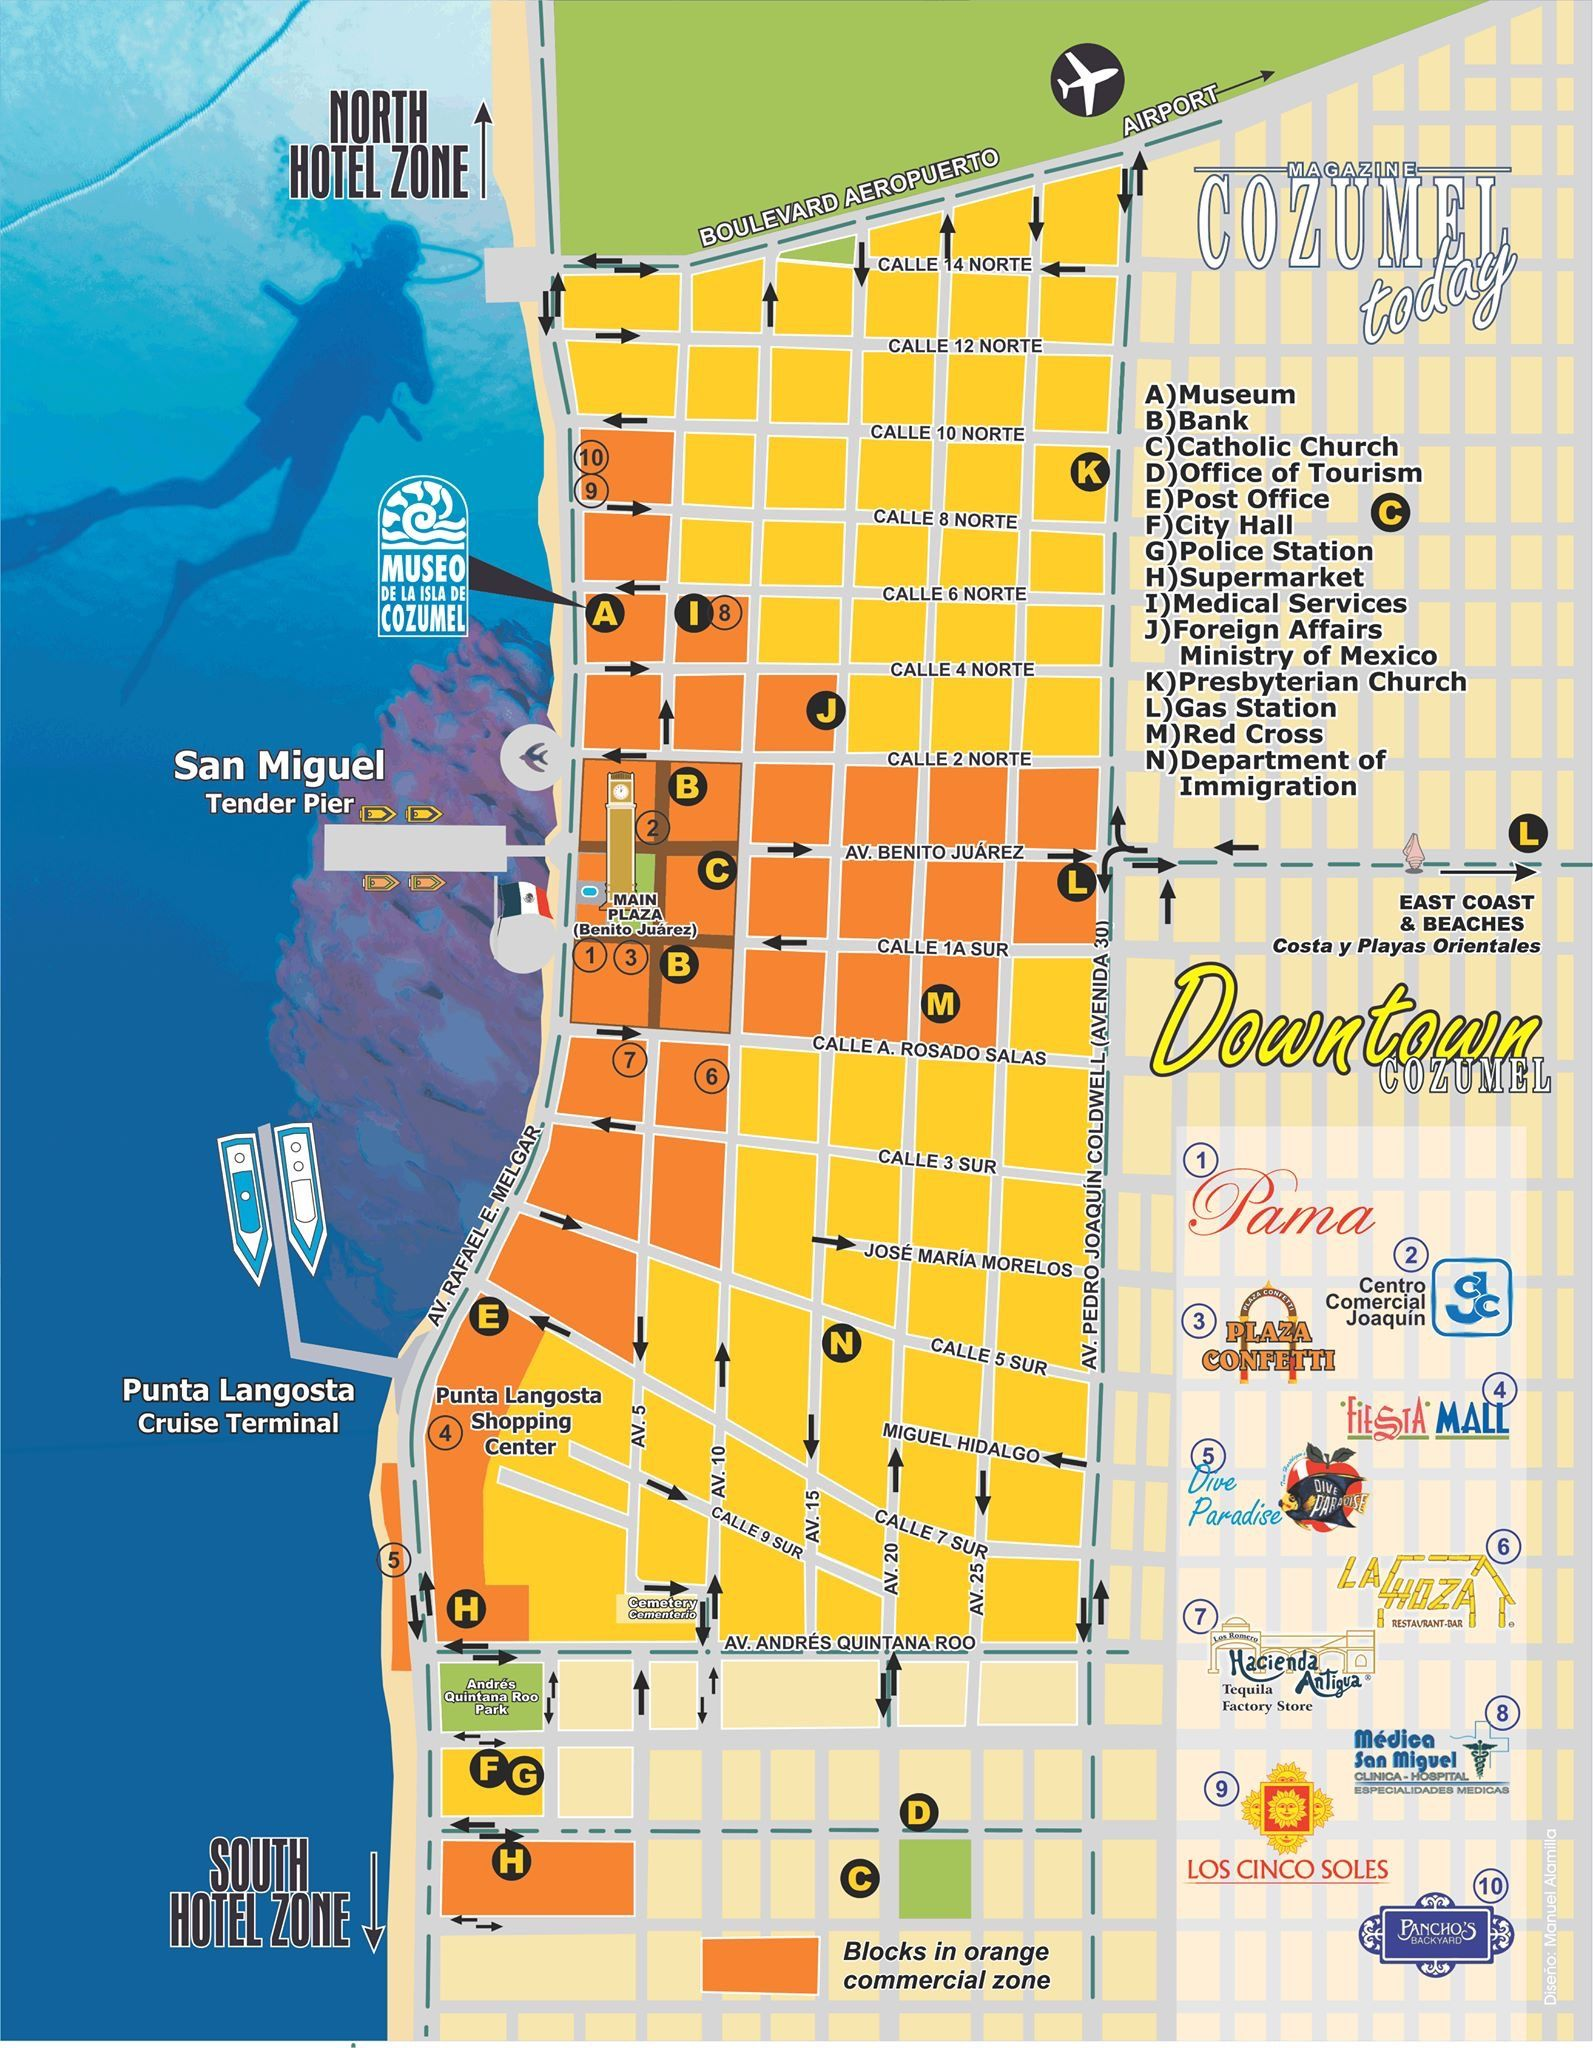 Cozumel Map Travel Guide 10 from cancunmapscom and a lifesaver